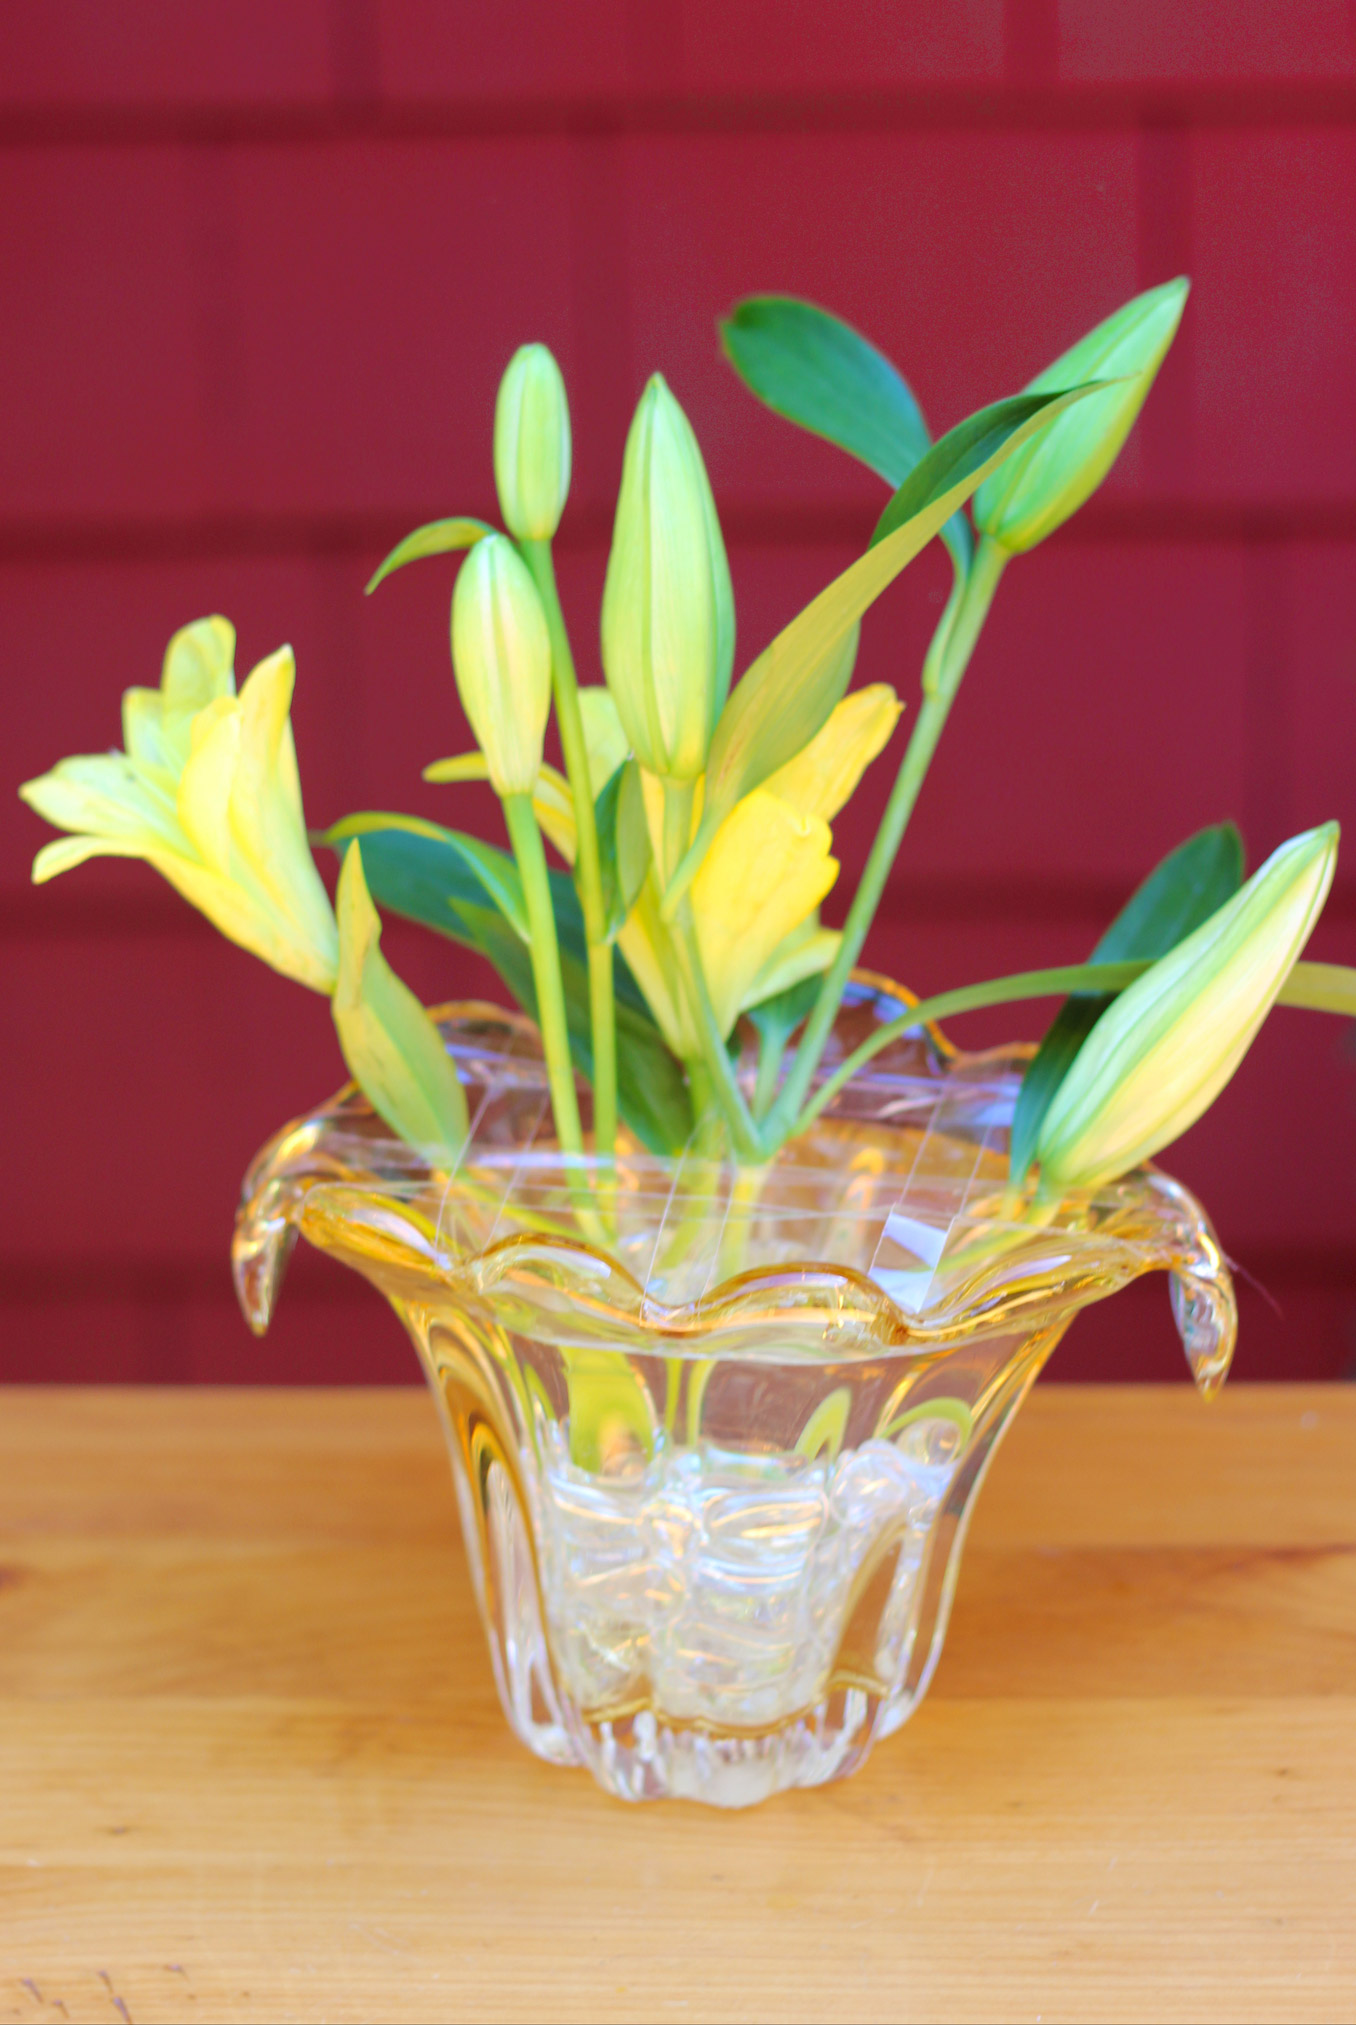 For this size vase, Re-cut lilies to 10.5 inches on 45 degree angle. Insert. It's OK to lift tape.